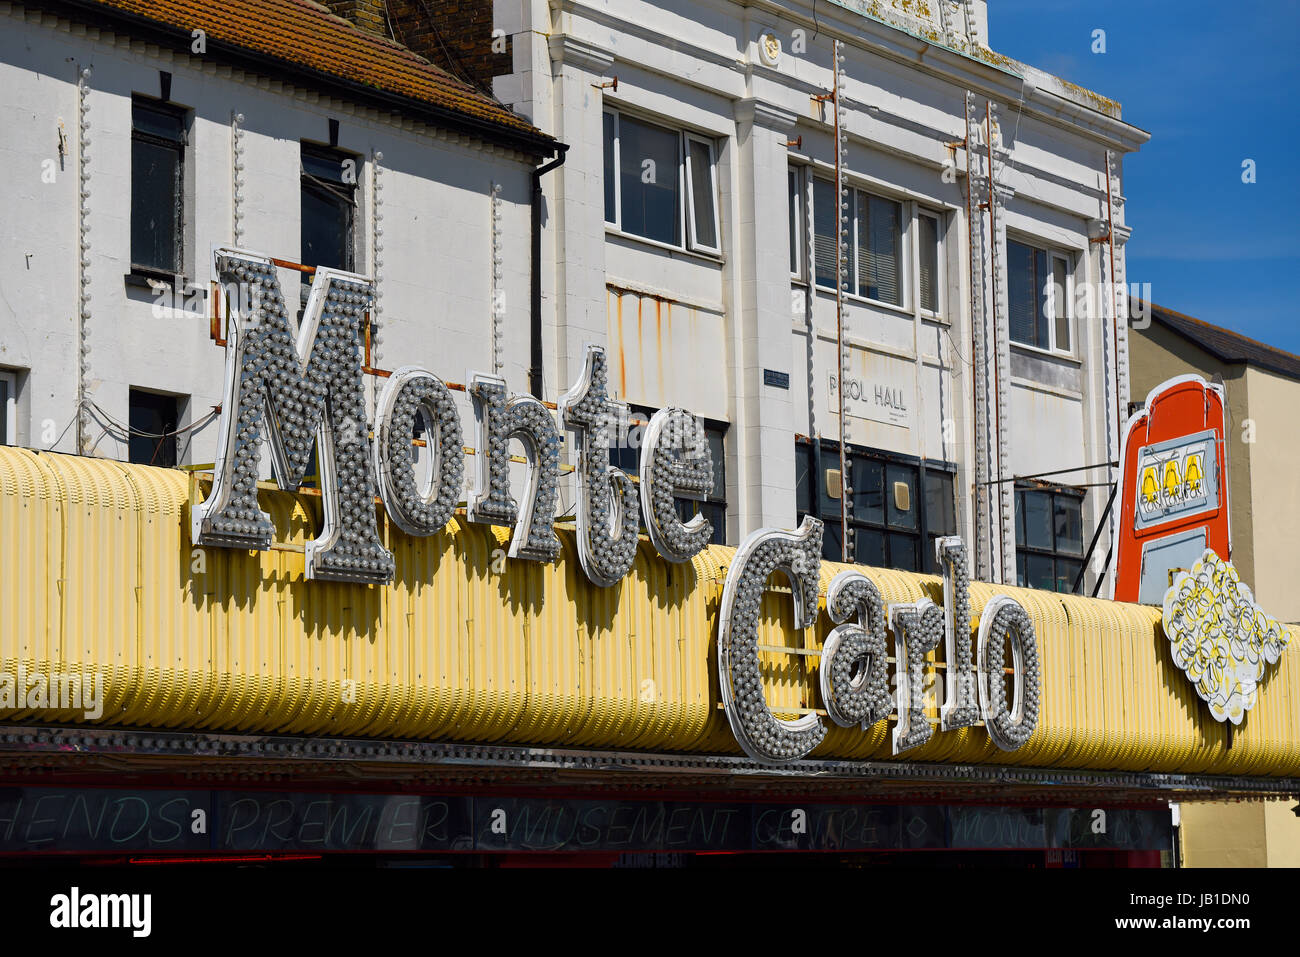 Monte Carlo amusement arcade building, Marine Parade, Southend on Sea, Essex. Space for copy - Stock Image